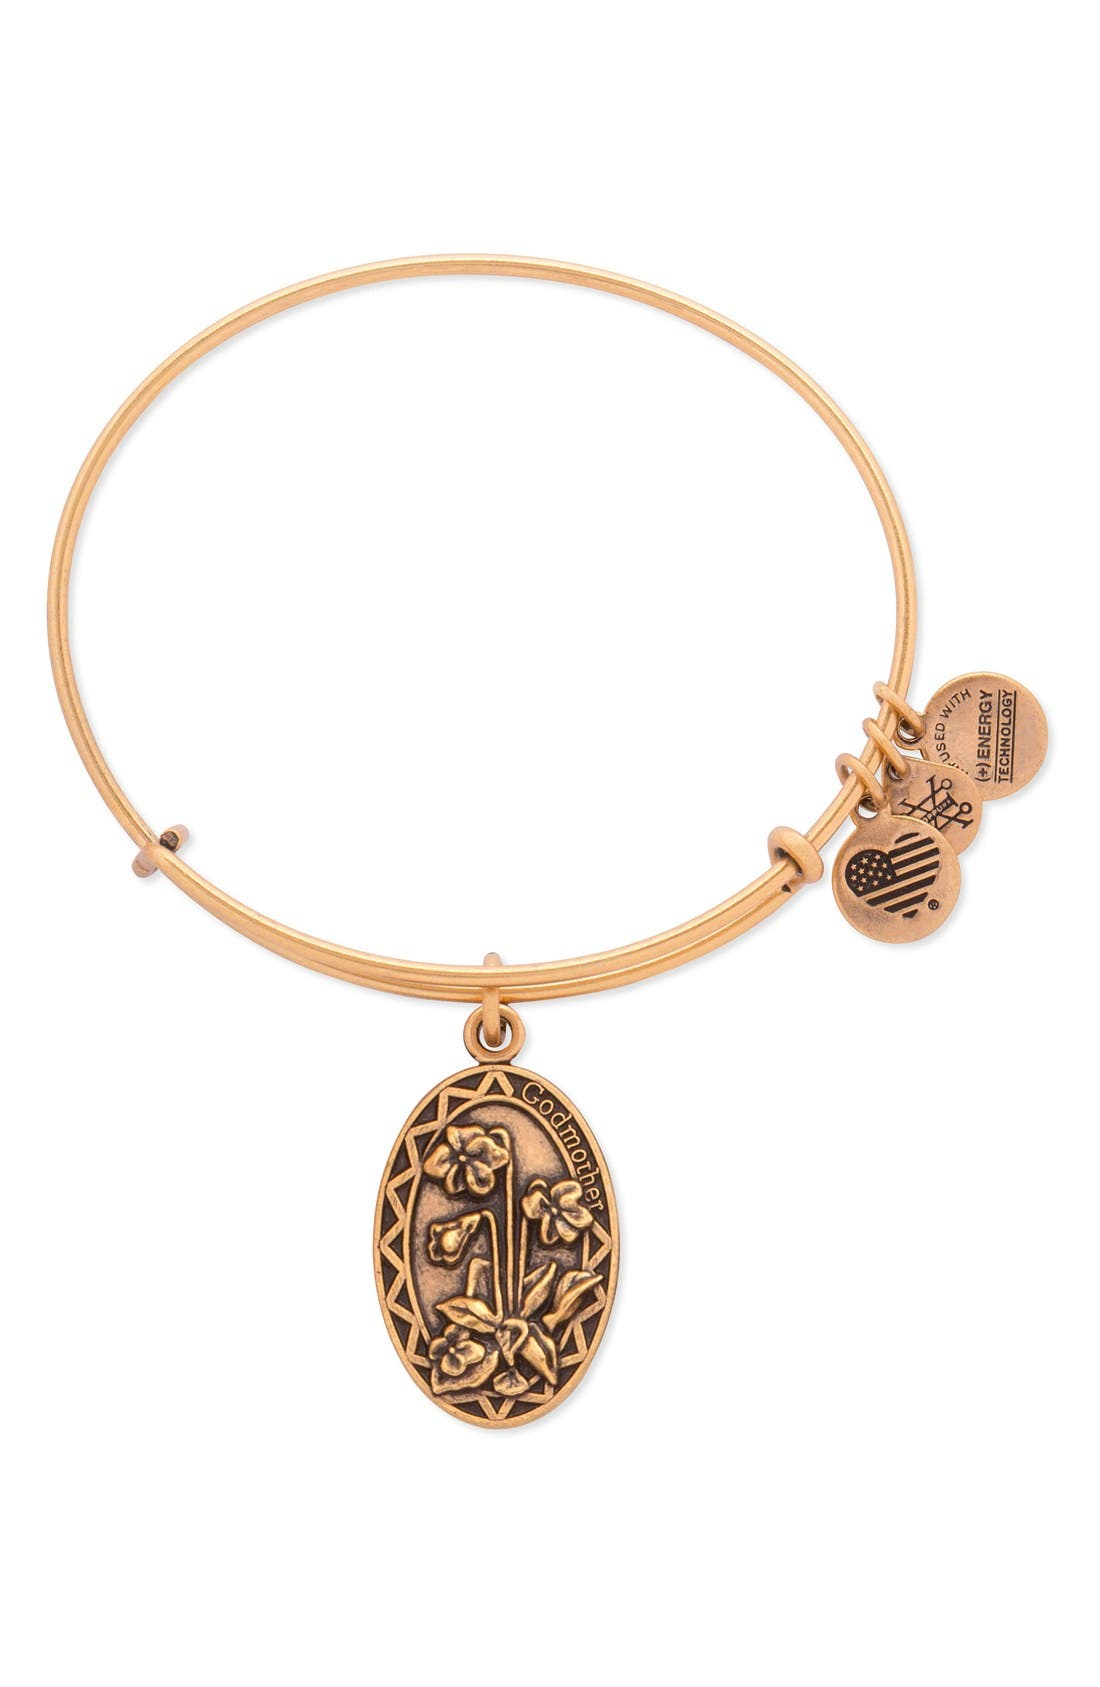 Alex and Ani 'Godmother' Bangle Bracelet